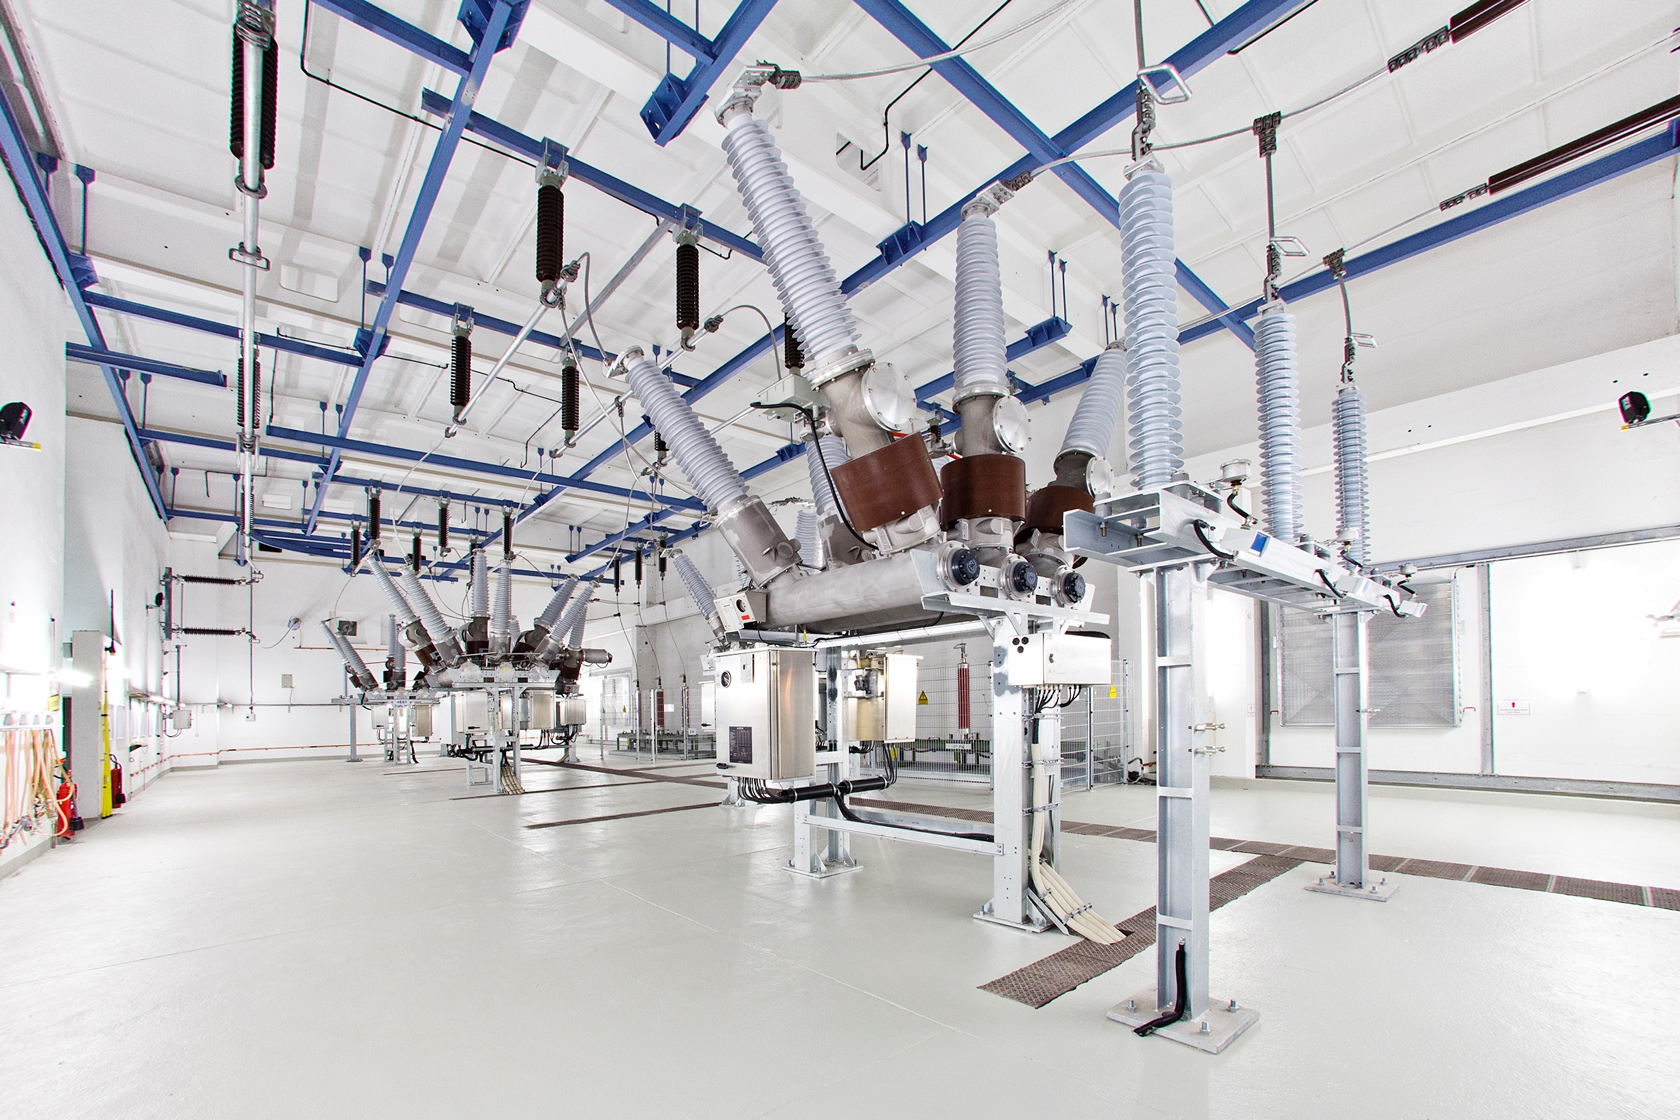 Alstom successfully installs five HYpact compact switchgear modules for Netz Leipzig GmbH at the LzK substation in Leipzig